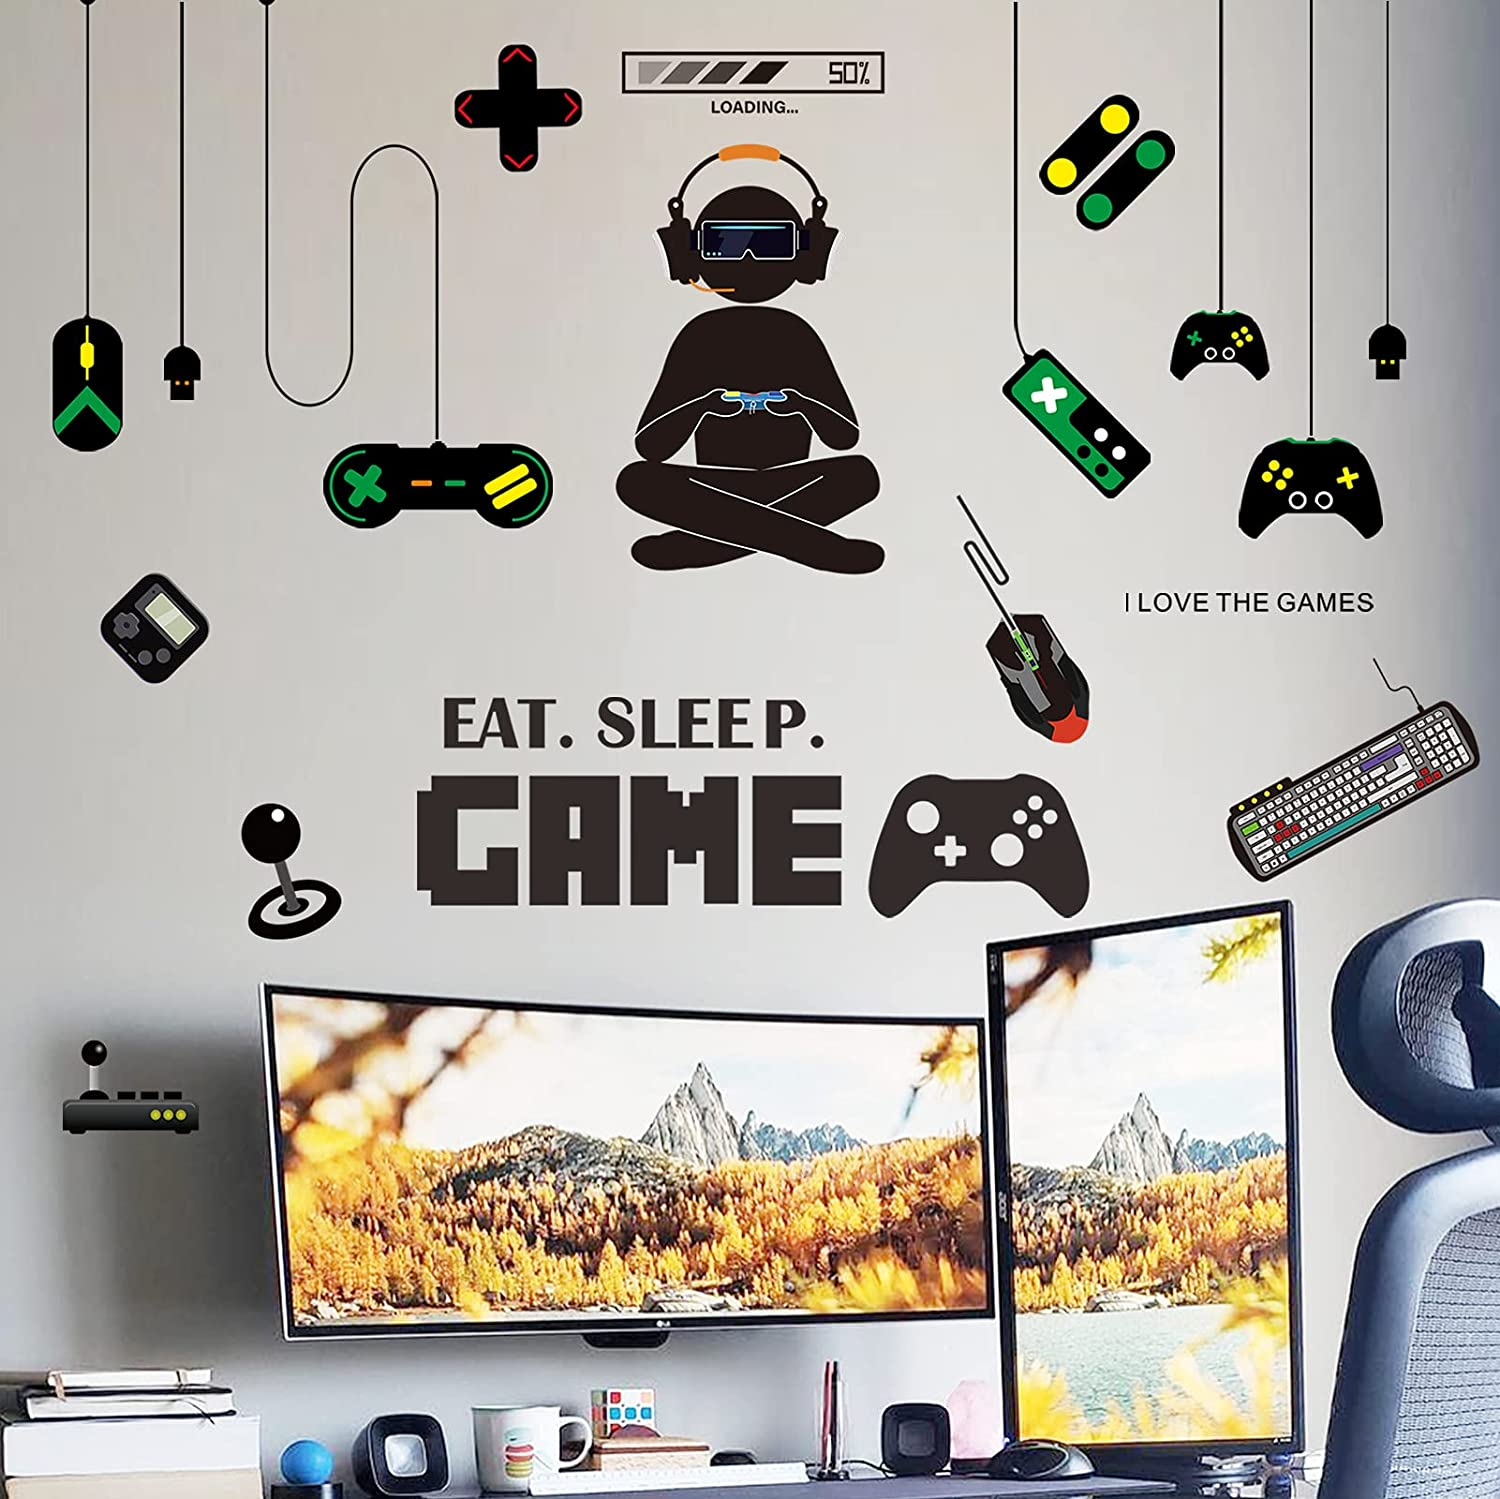 Gamer Room Decor Boys Bedroom Decor Sticker Set for Video Game Room Decoration Wall Decals Eat Sleep Game for Boys Game Room (3 Sheets)